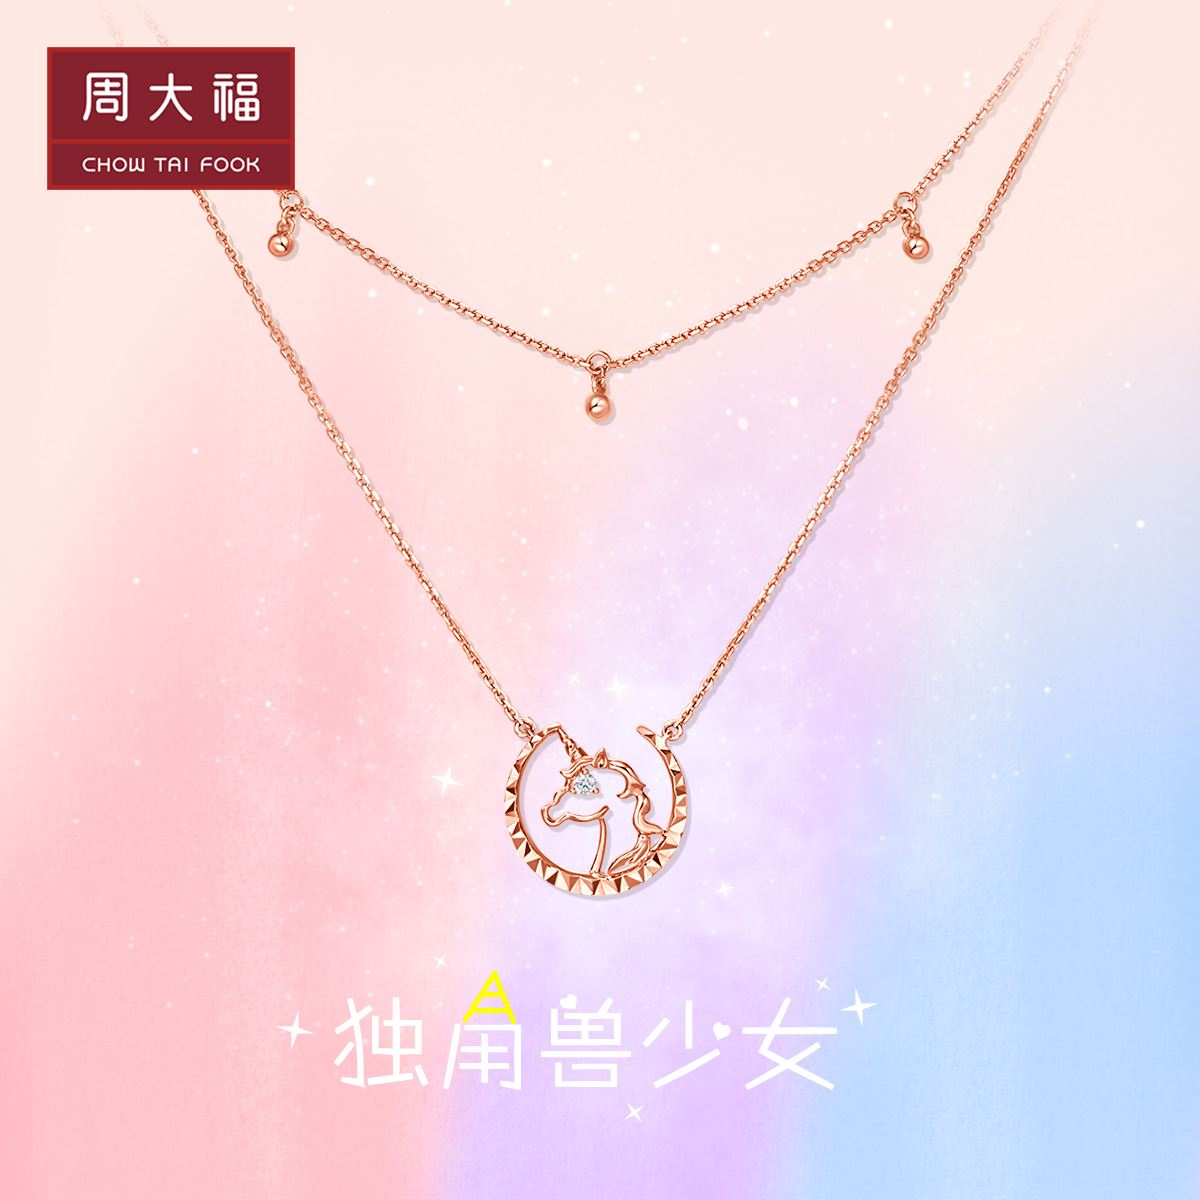 Pre sale Zhou Dafu jewelry exquisite Unicorn 18K Gold Color Gold Diamond double layer Necklace u180189